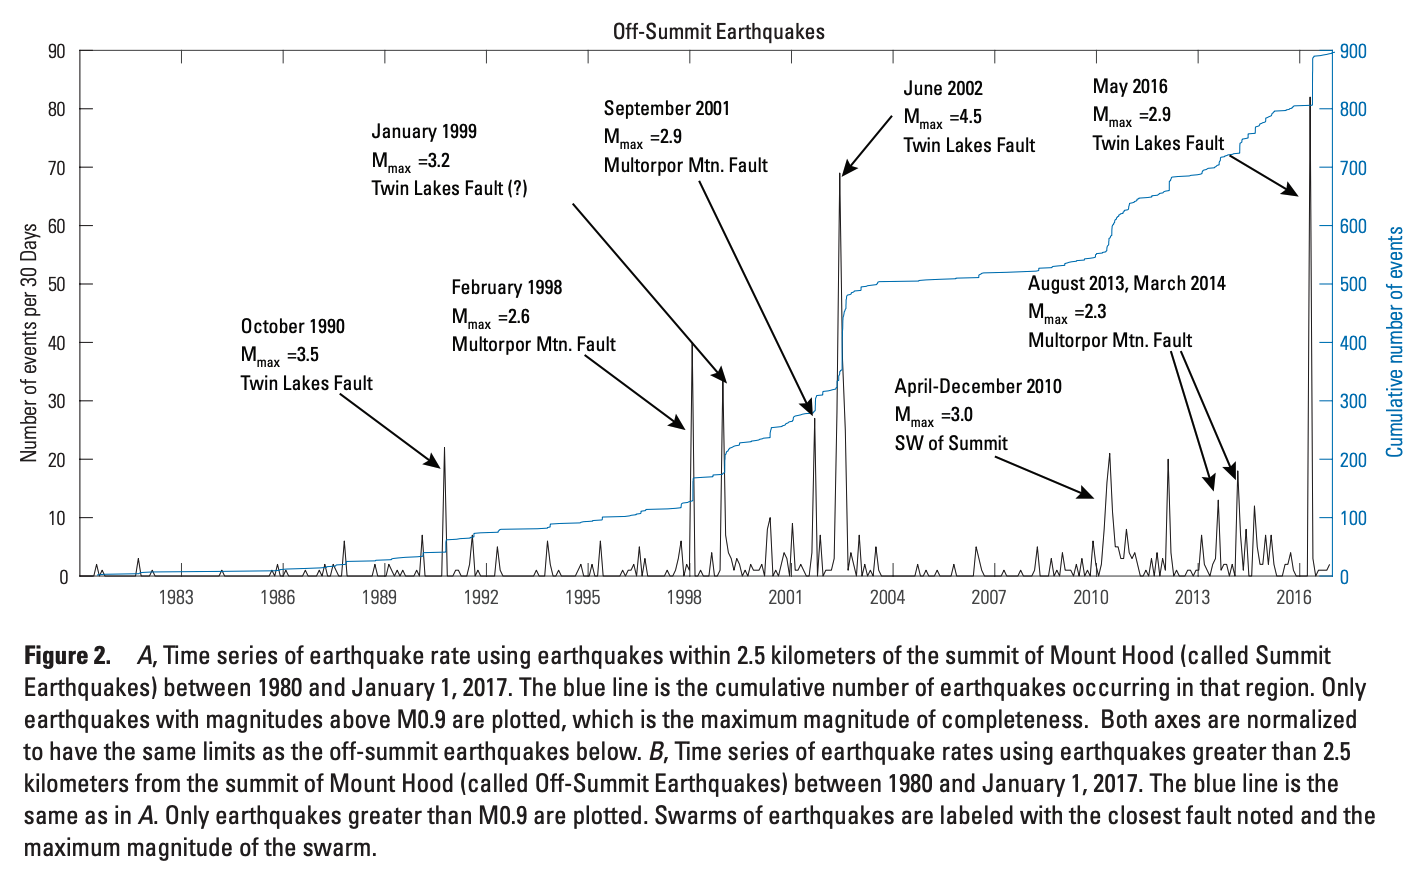 Annotated, off-summit Mt Hood seismicity through 2017